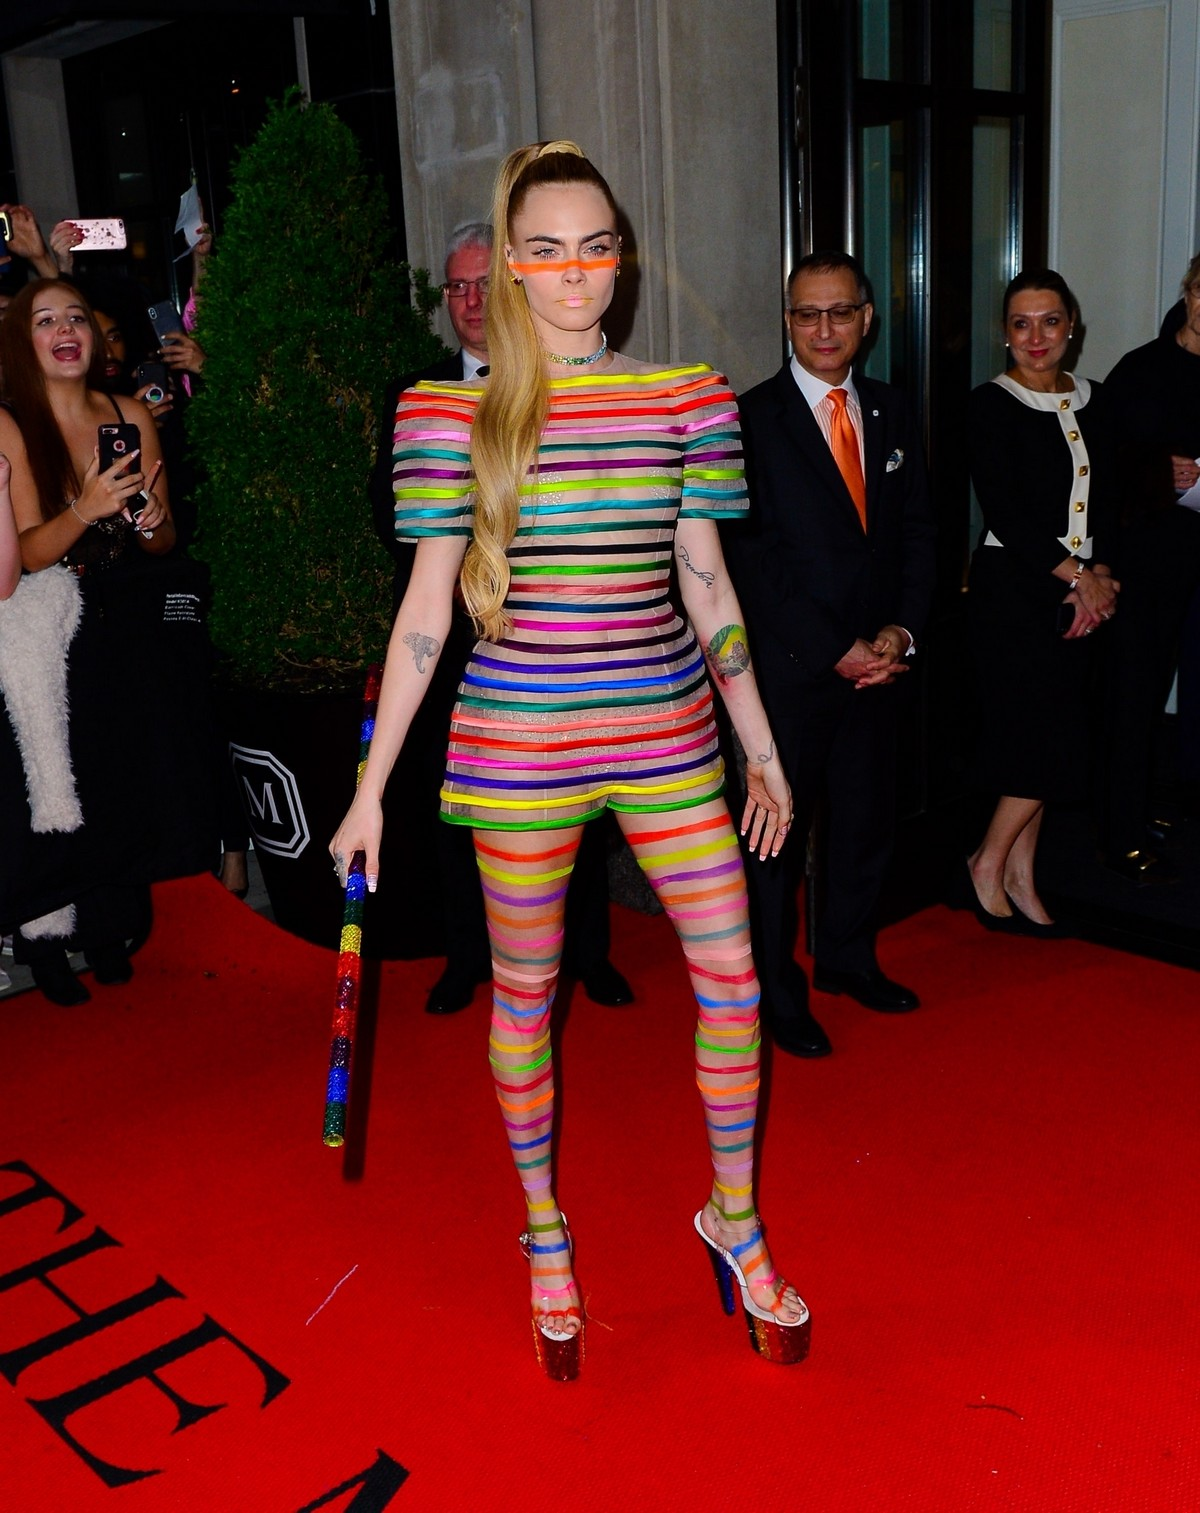 Cara Delevingne Out in Stripes for the 2019 Met Gala in New York 201905/06 4